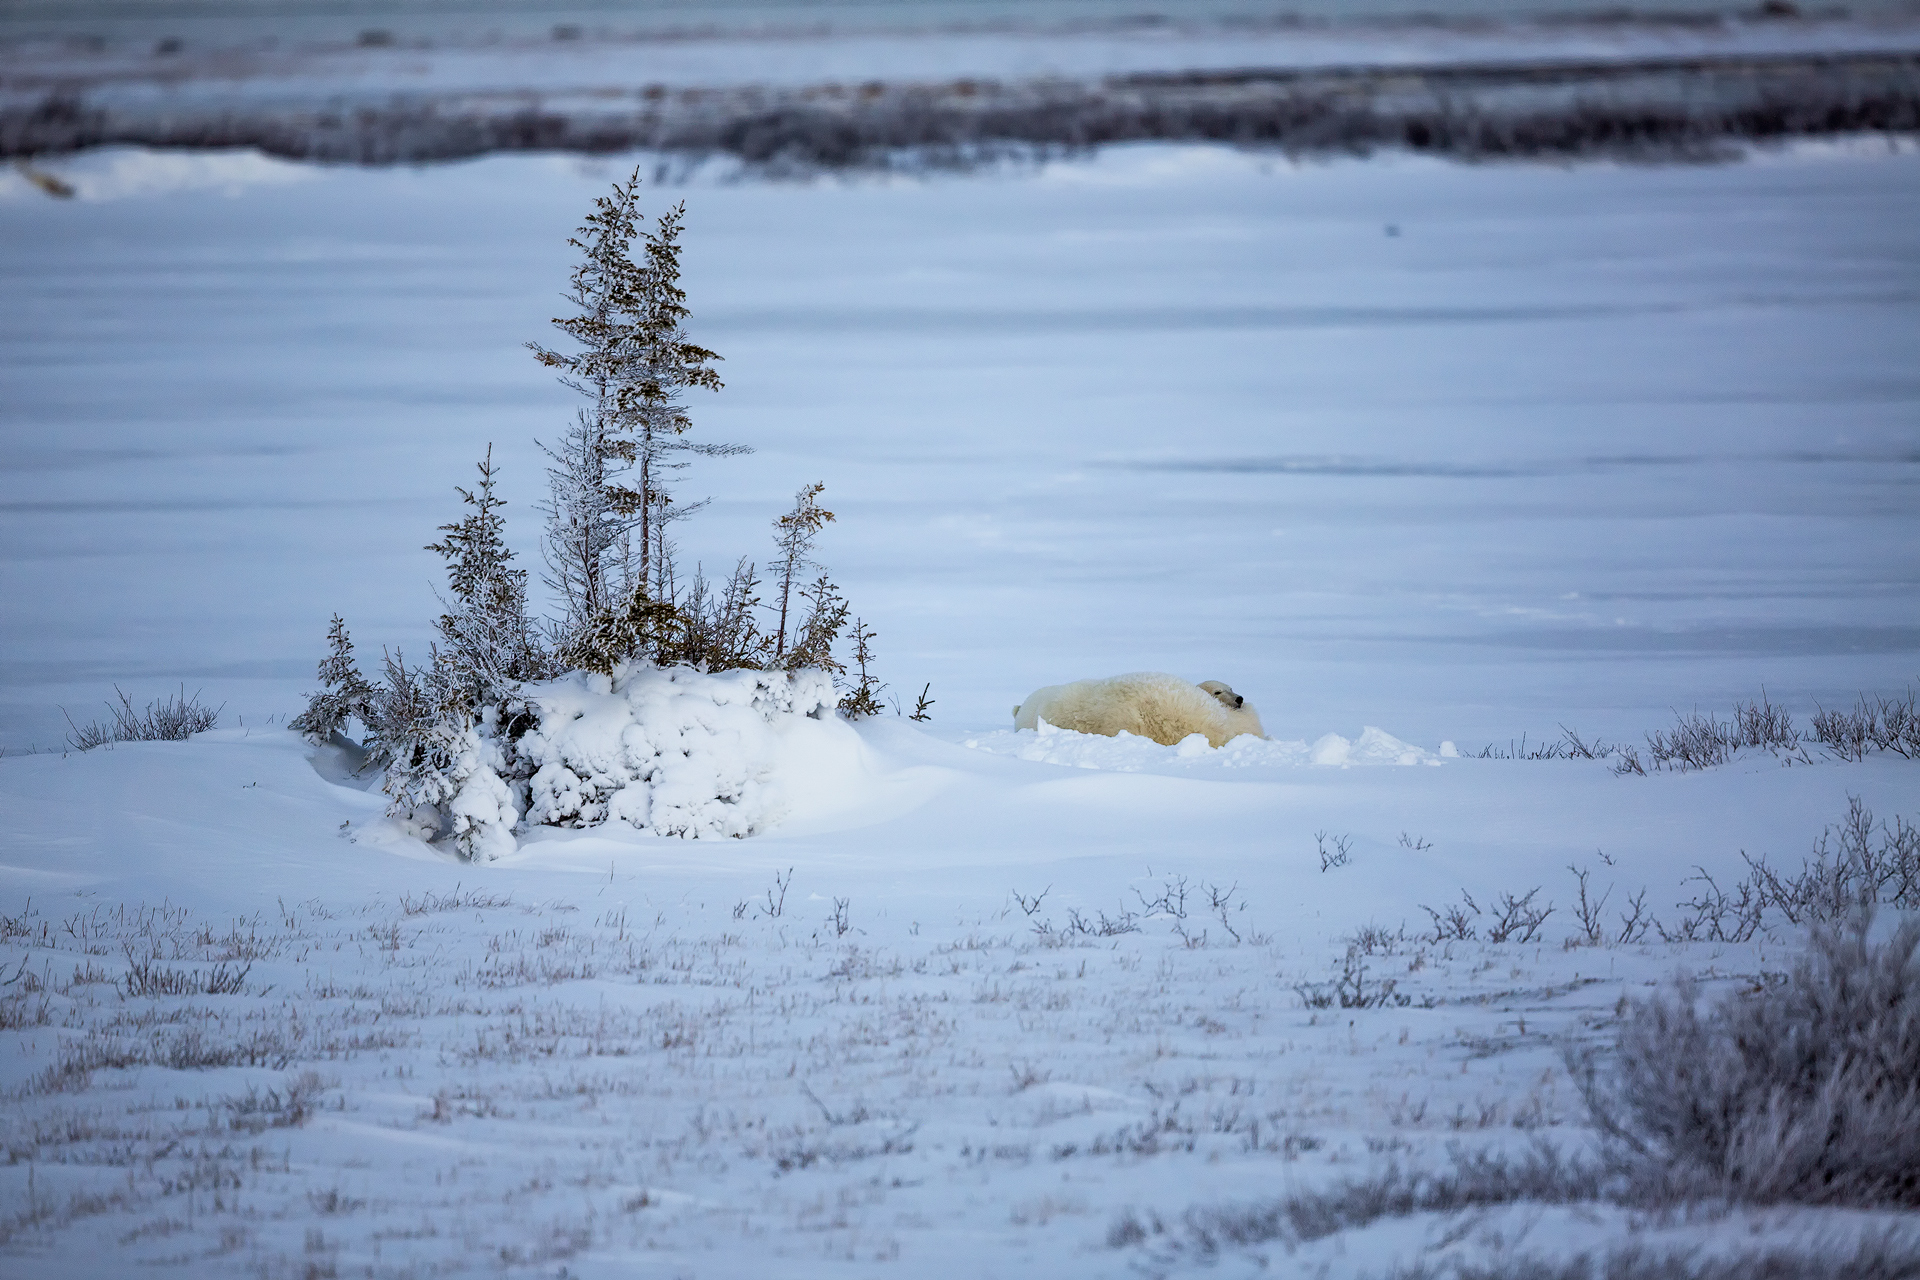 Andrei Duman Polar Bears Churchill, Canada 01